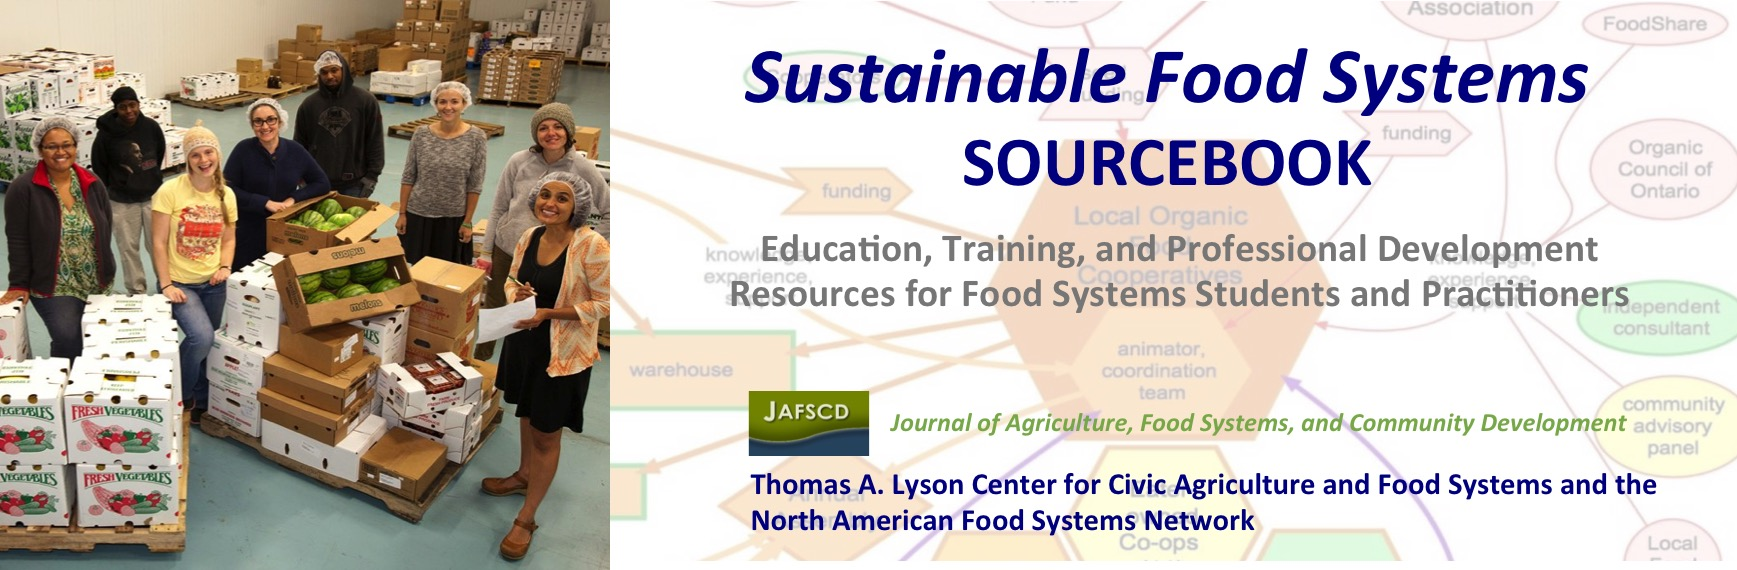 Sustainable Food Systems Sourcebook